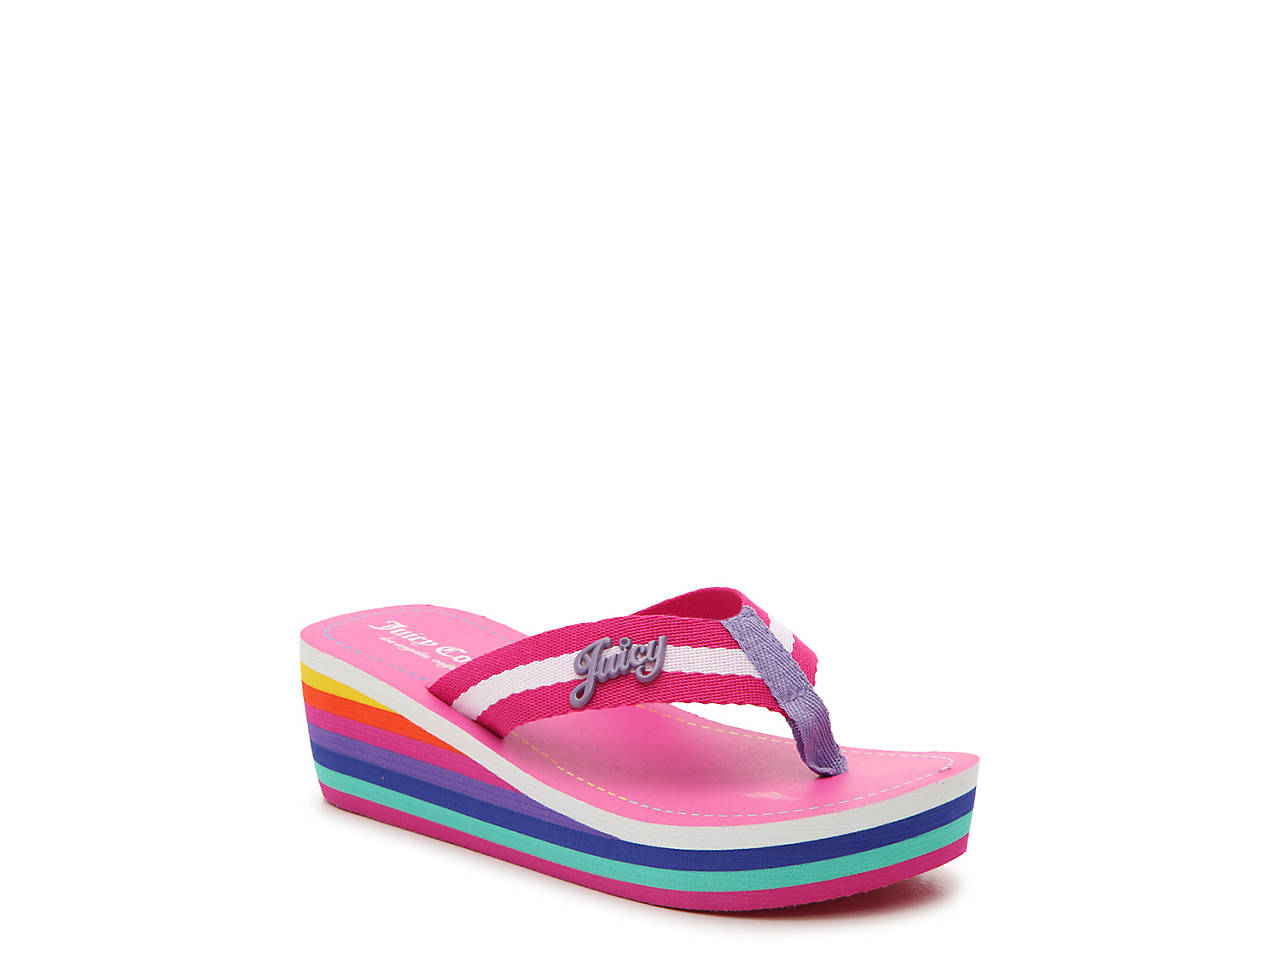 9fbabef43b95 Juicy Couture Topanga Toddler   Youth Wedge Sandal Kids Shoes